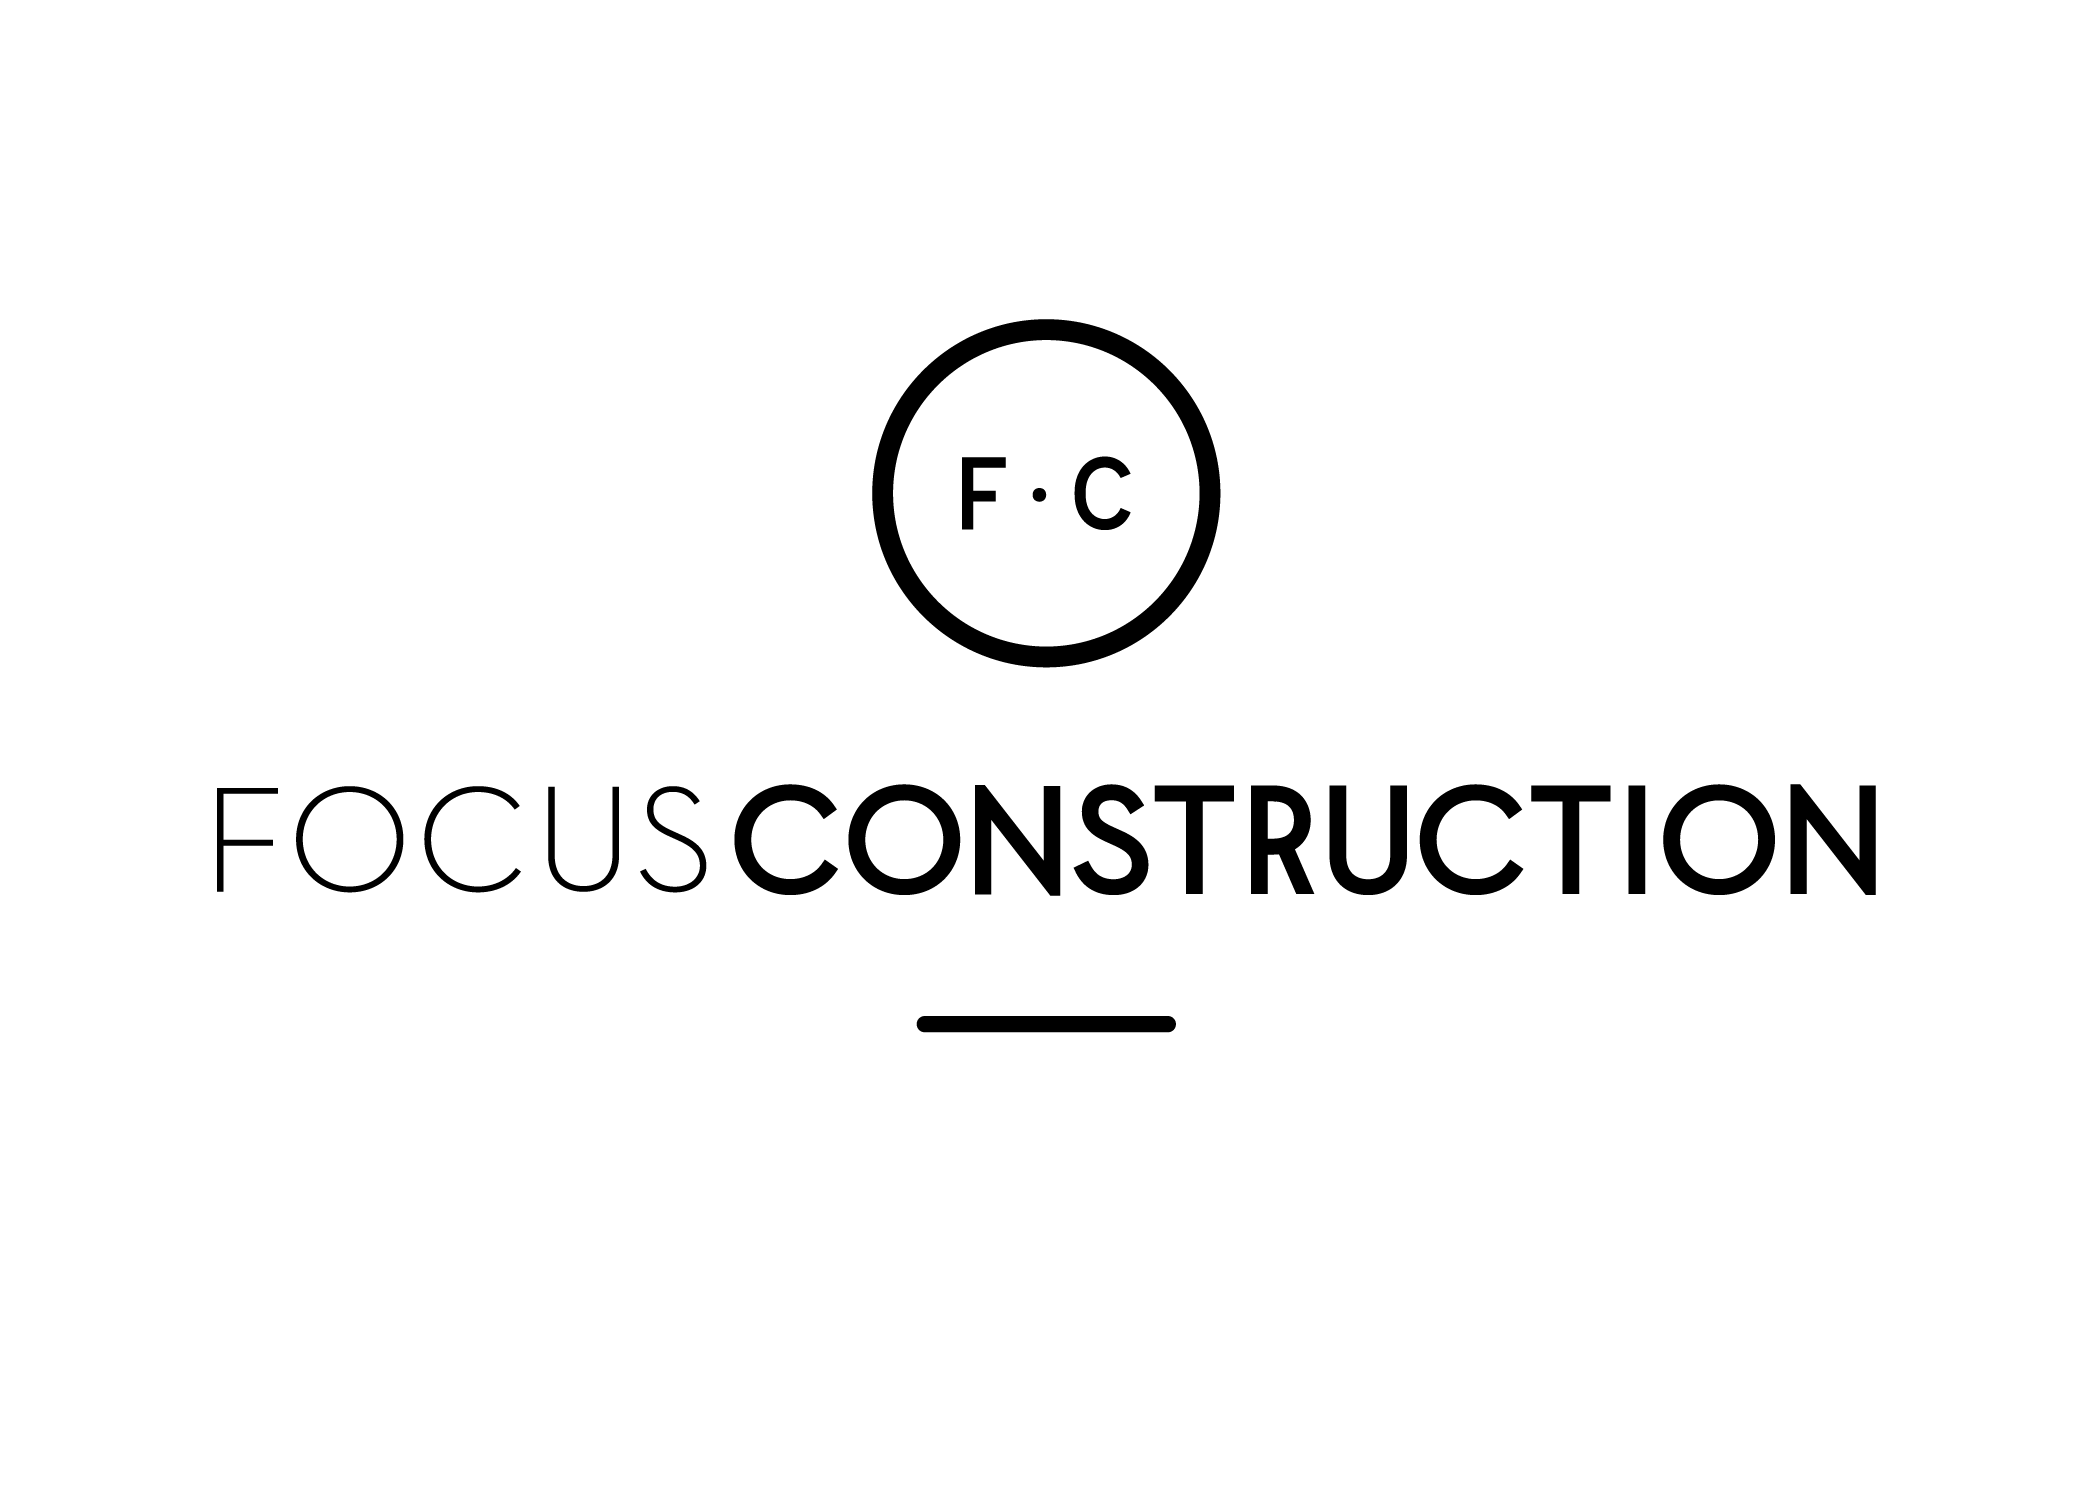 Focus Construction